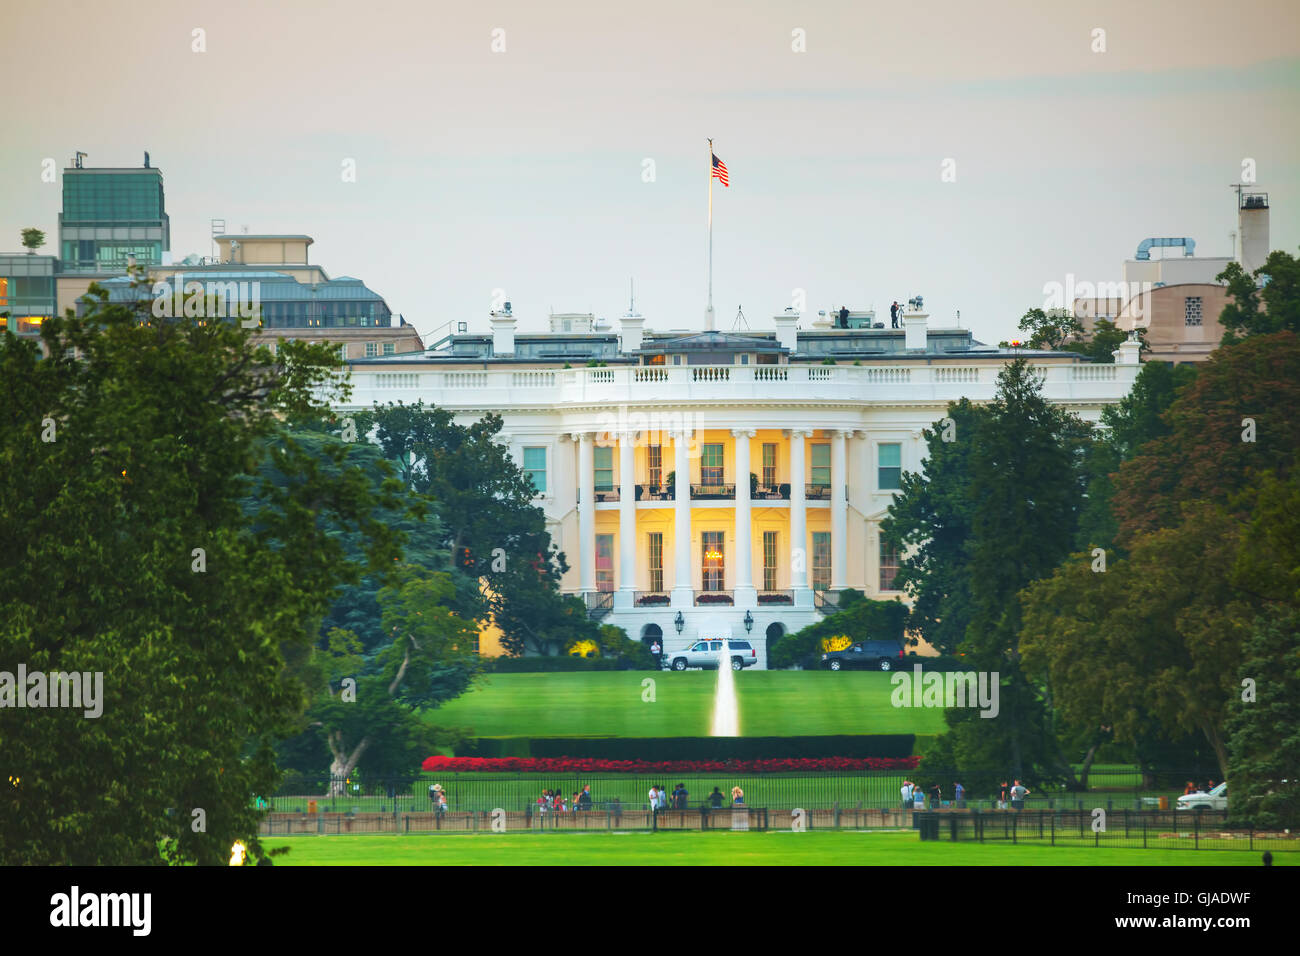 The White House building in Washington, DC in the evening - Stock Image